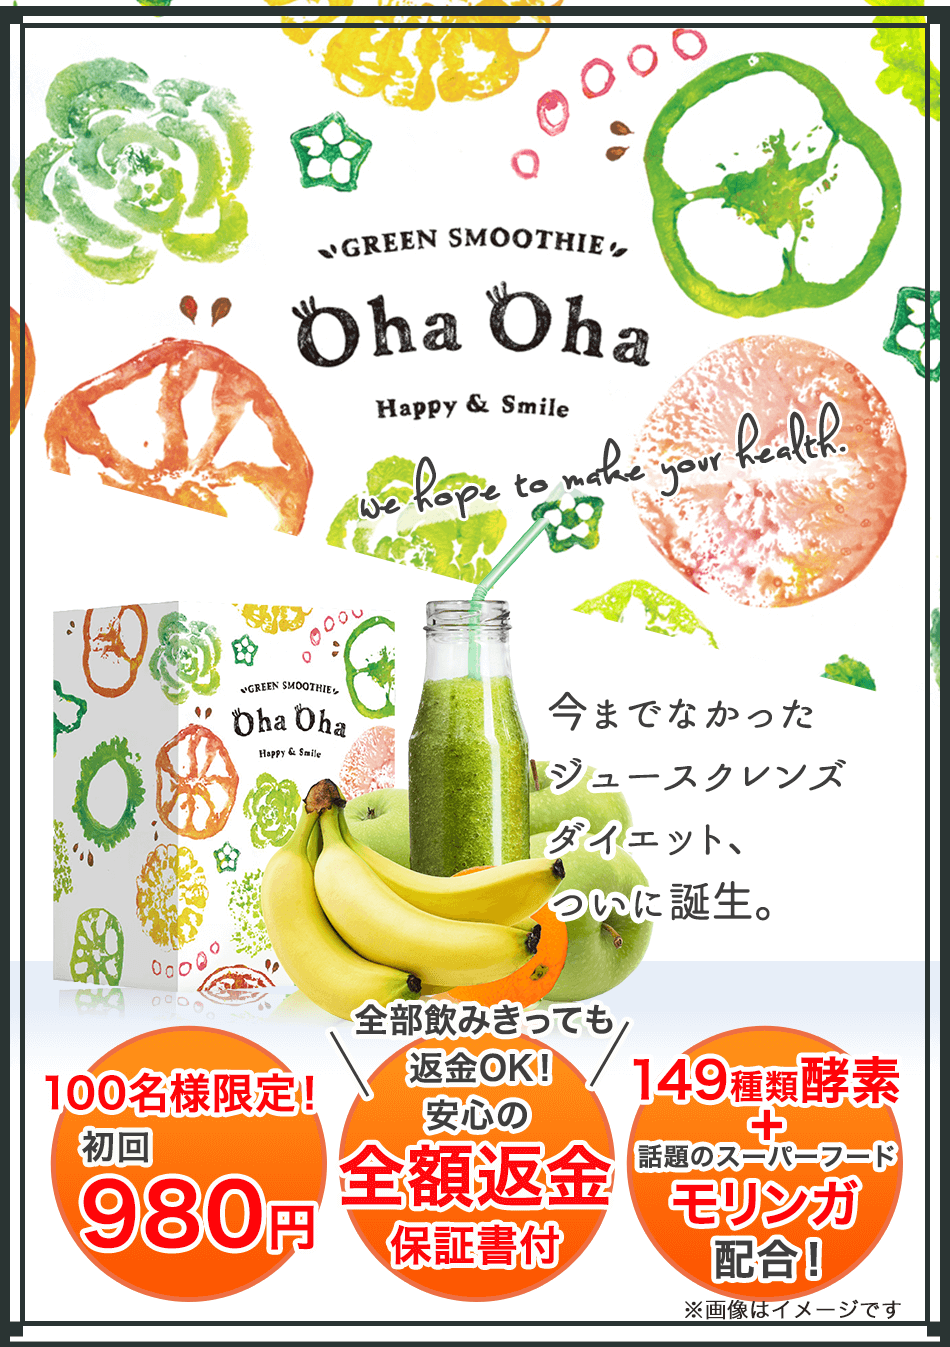 GREEN SMOOTHIE OhaOha Happy& Smile we hppe to make your health 今までなかった ジュースクレンズダイエット ついに誕生。